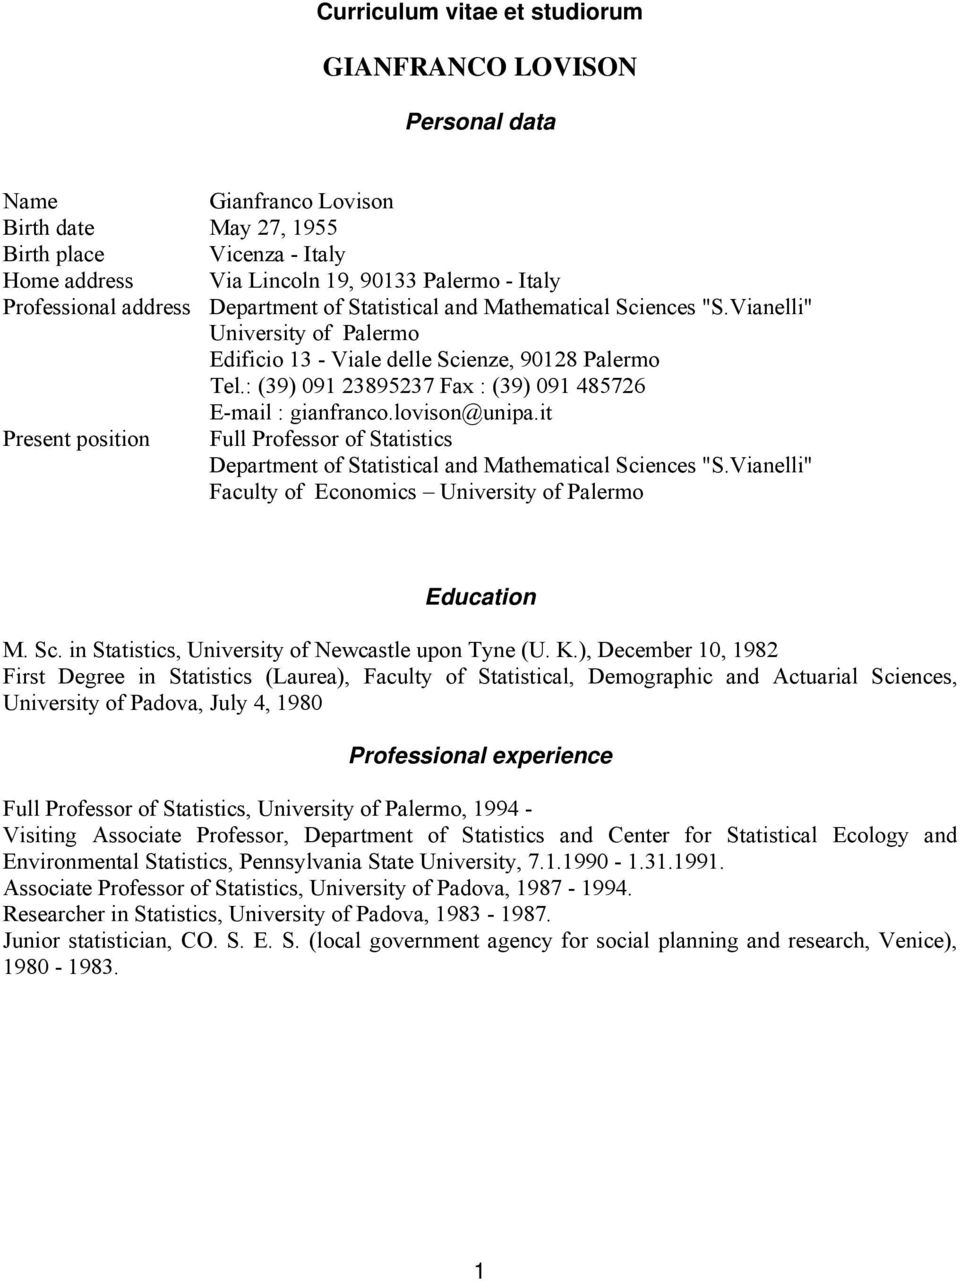 ": (39) 091 23895237 Fax : (39) 091 485726 E-mail : gianfranco.lovison@unipa.it Present position Full Professor of Statistics Department of Statistical and Mathematical Sciences ""S."